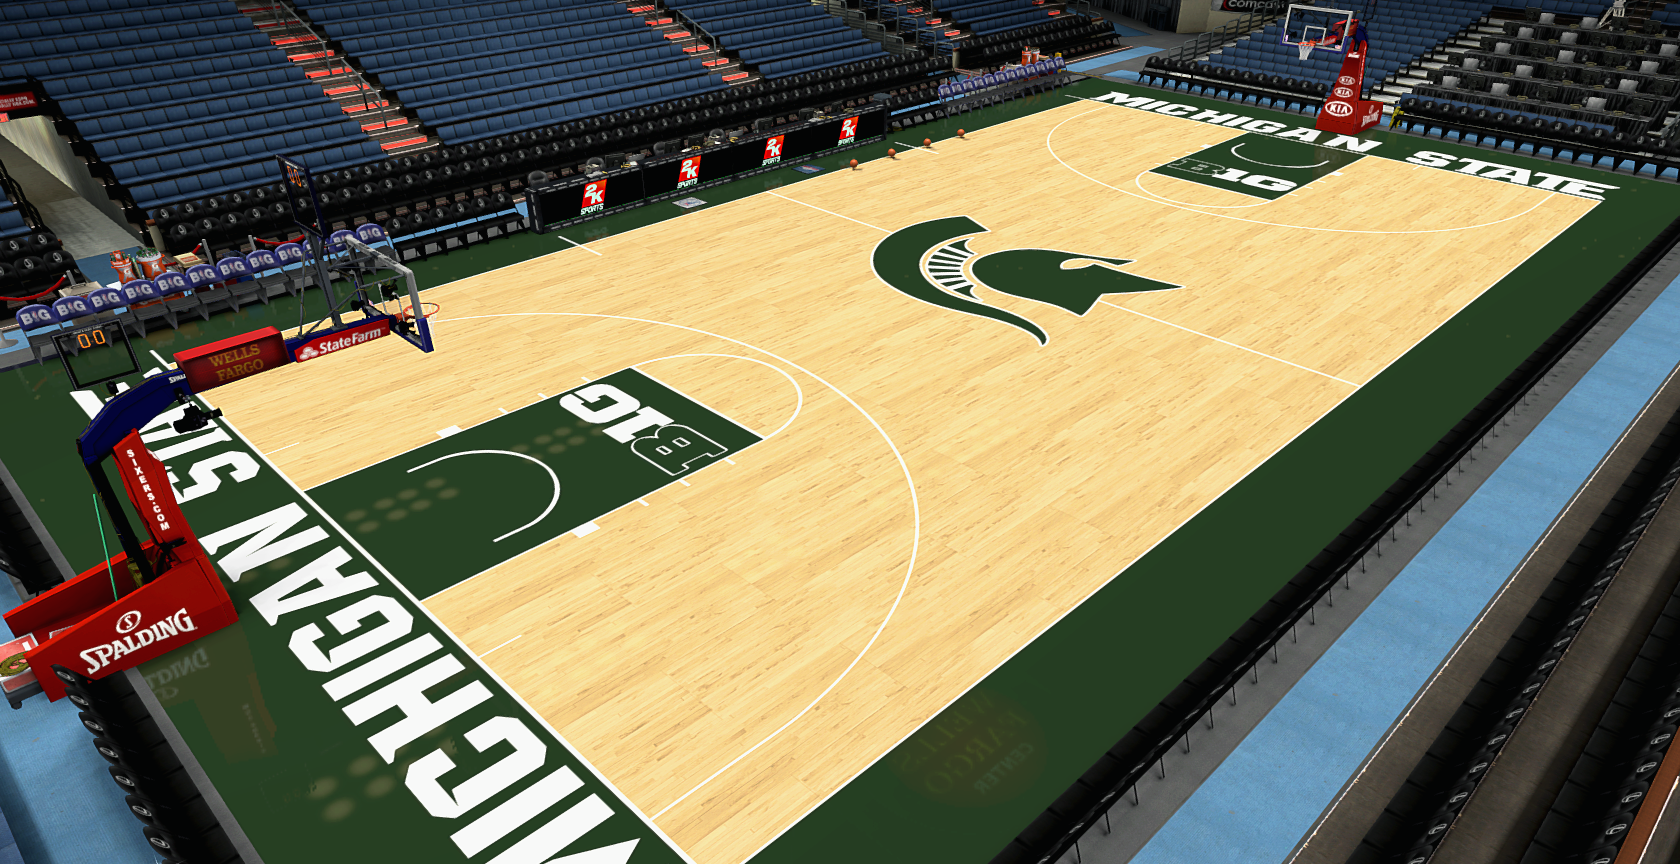 Michigan basketball court